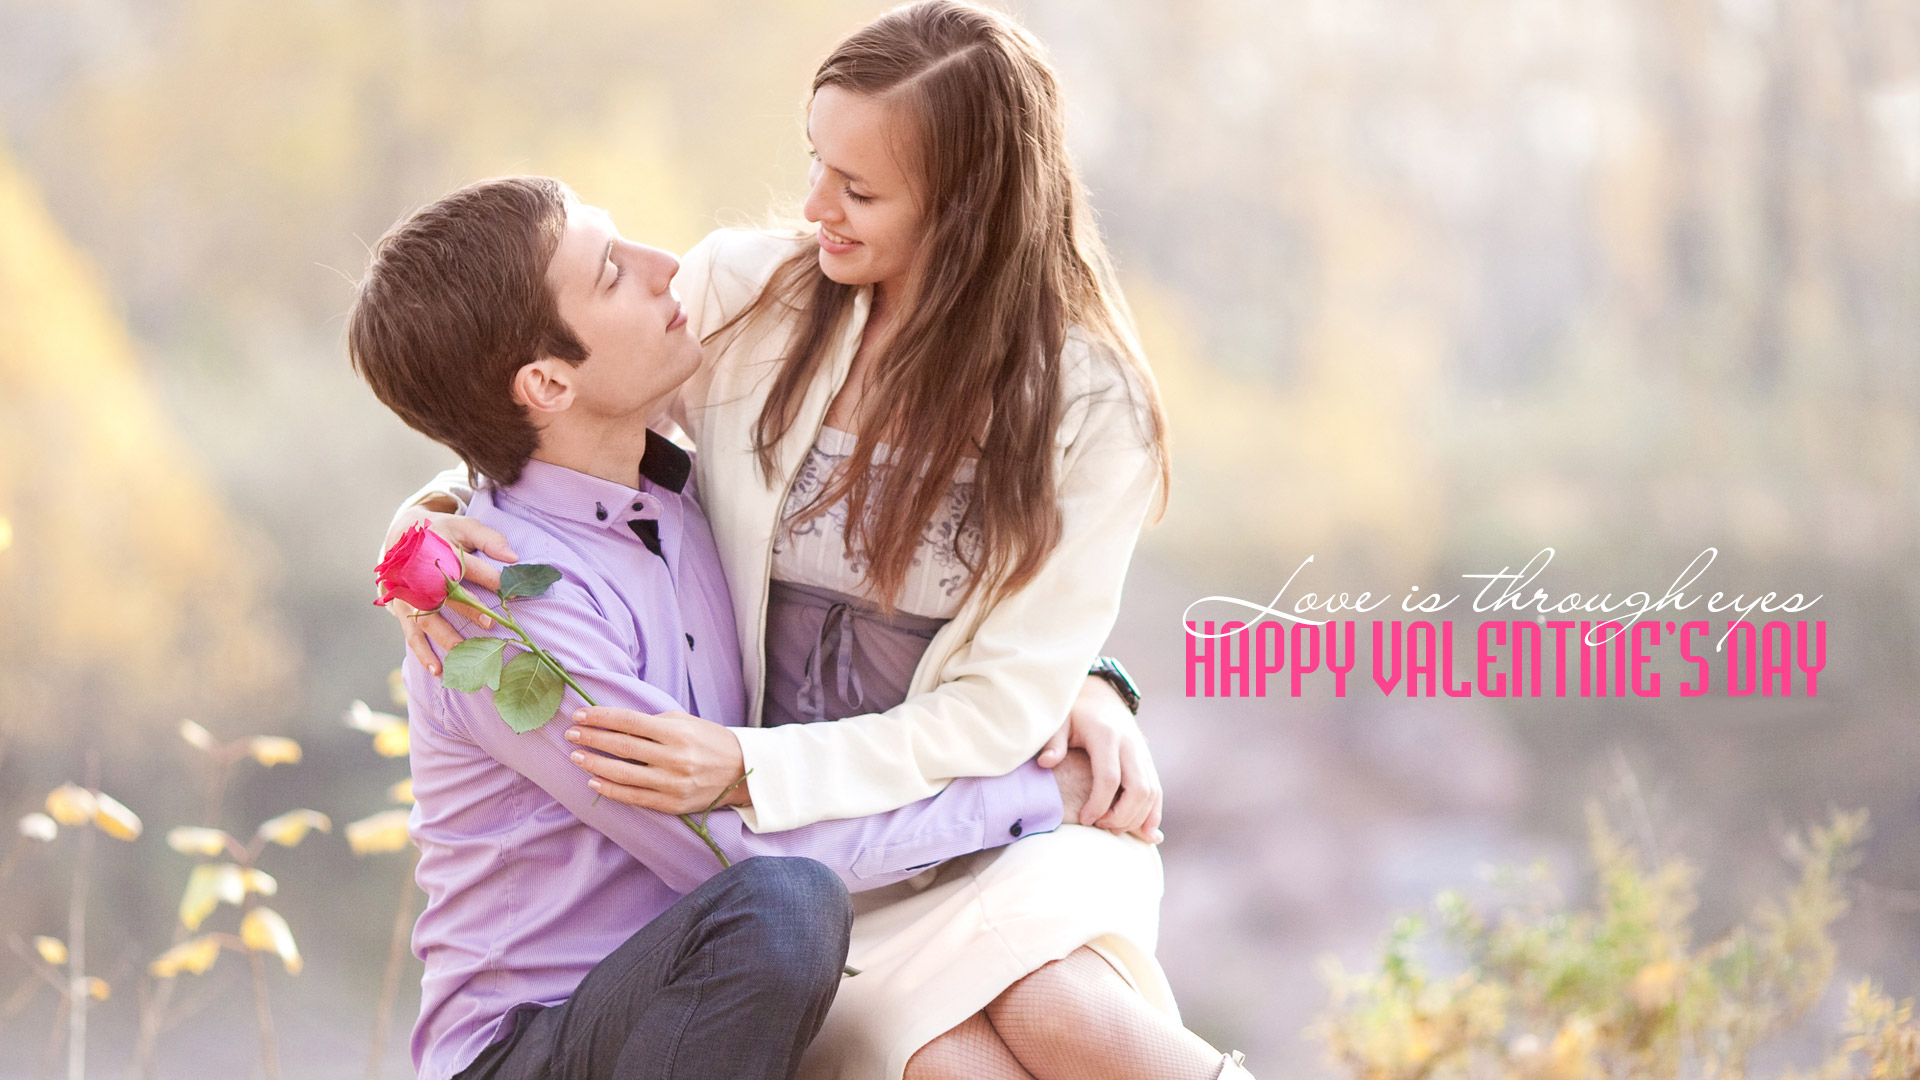 Best couple Love Image For Valentine Day 2017